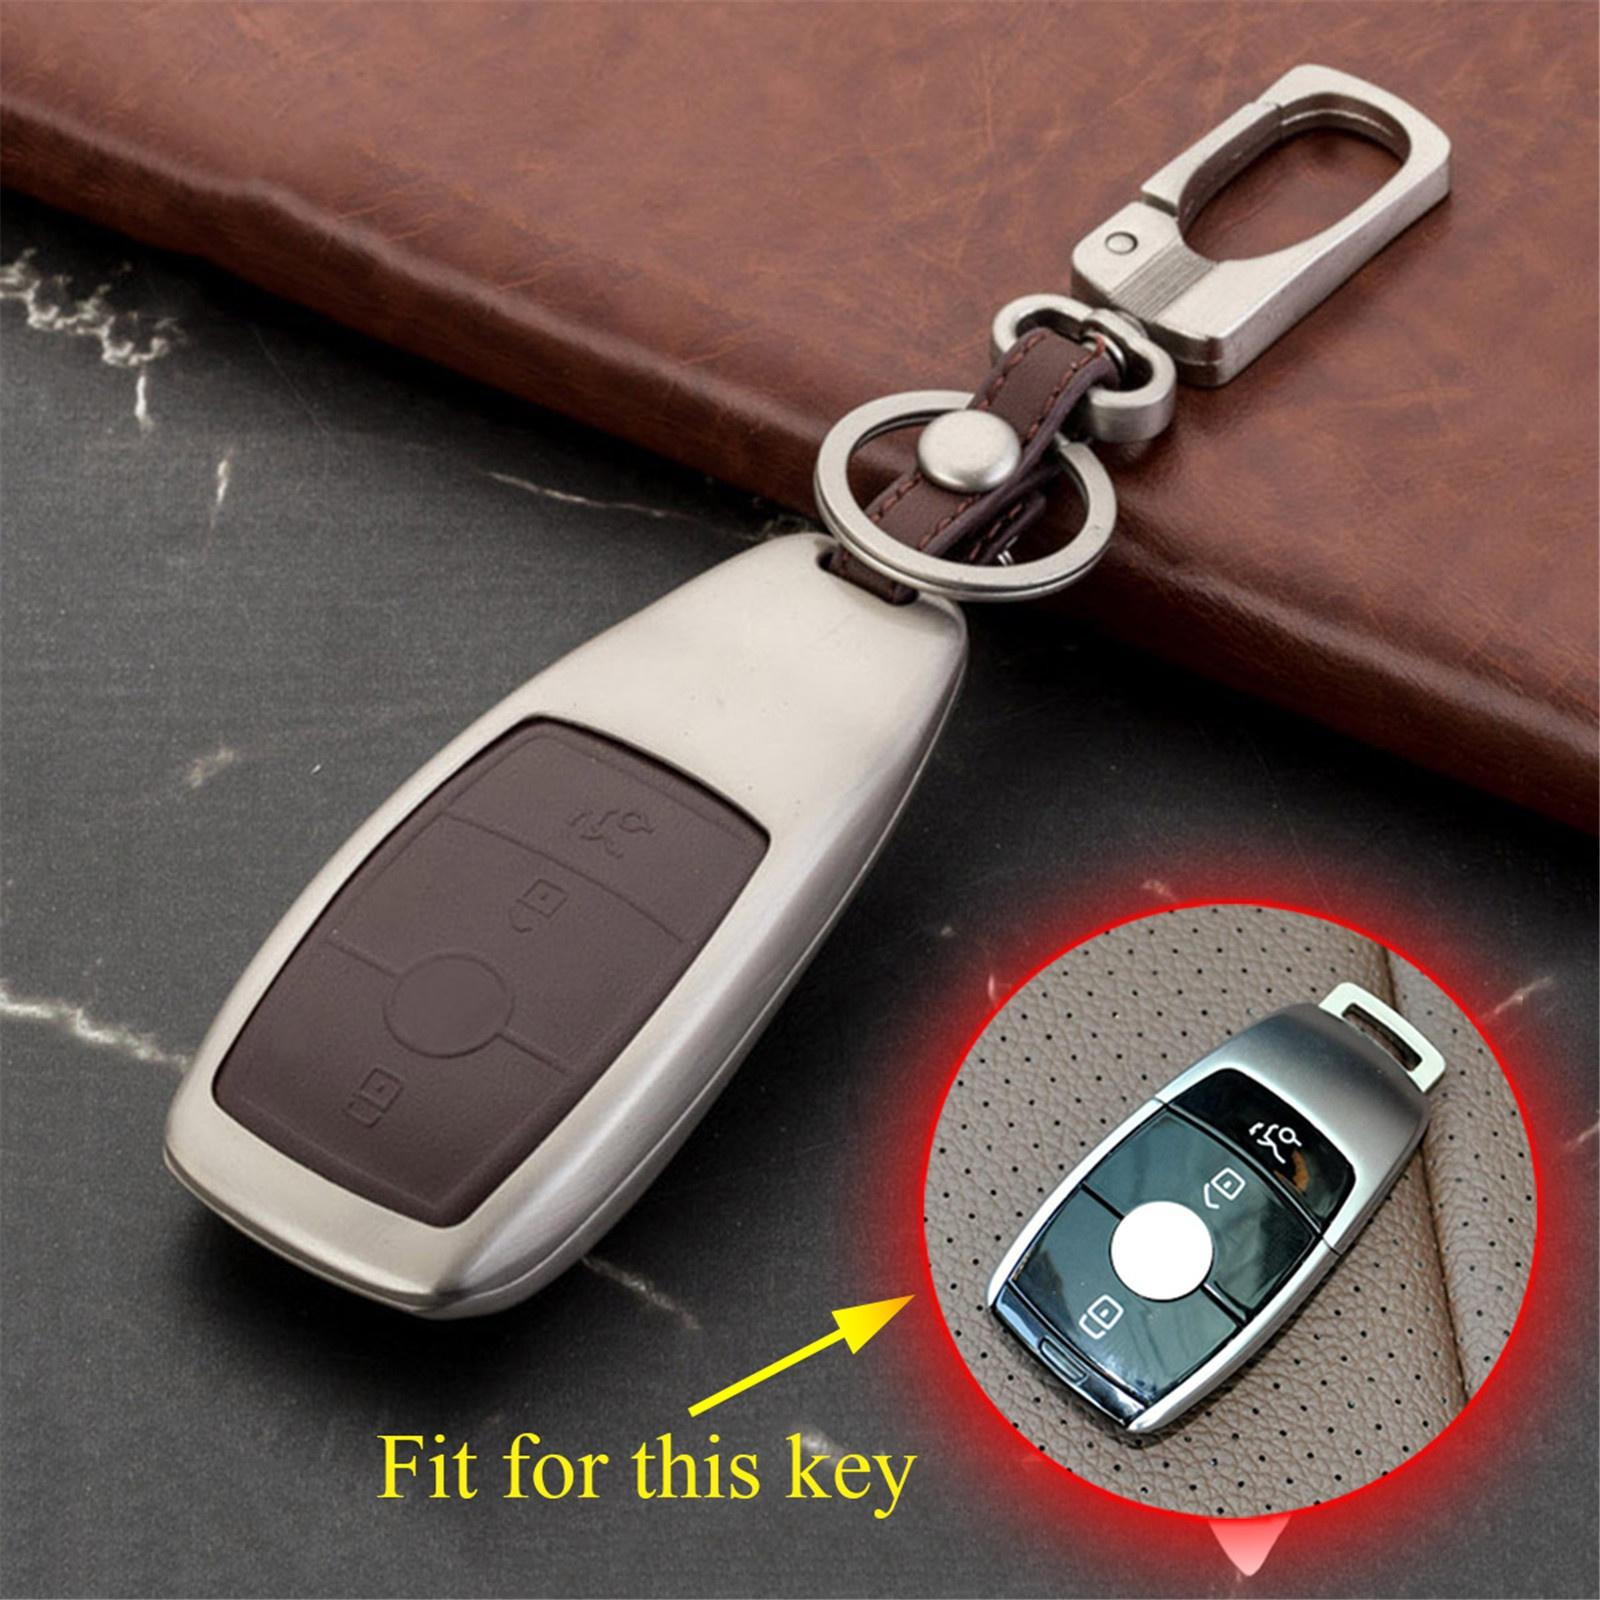 3 Buttons Key Ring For Benz E S Class W213 S213 2016 2017 2018 Accessories Key Fob Case Holder Shell Box Fob Shell Bag Protector Cover